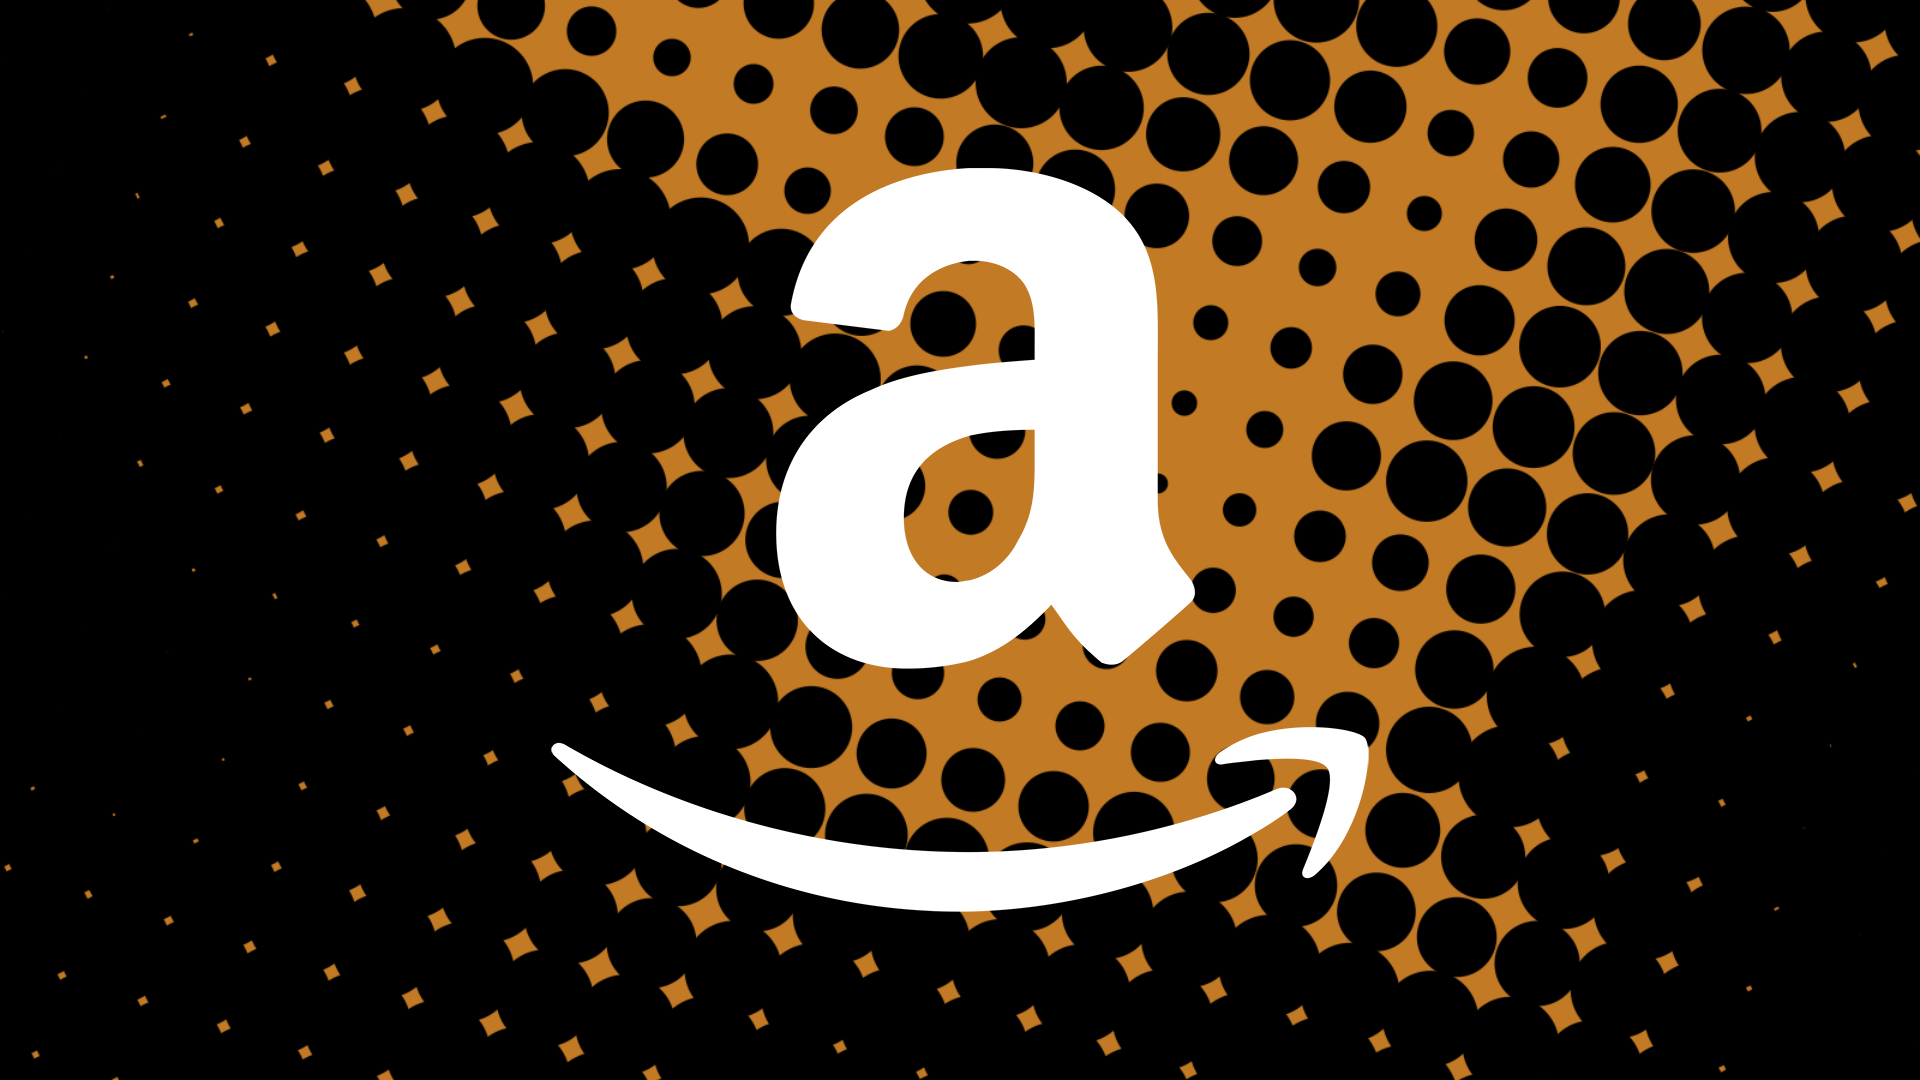 Amazon Wallpapers Image Photos Pictures Backgrounds